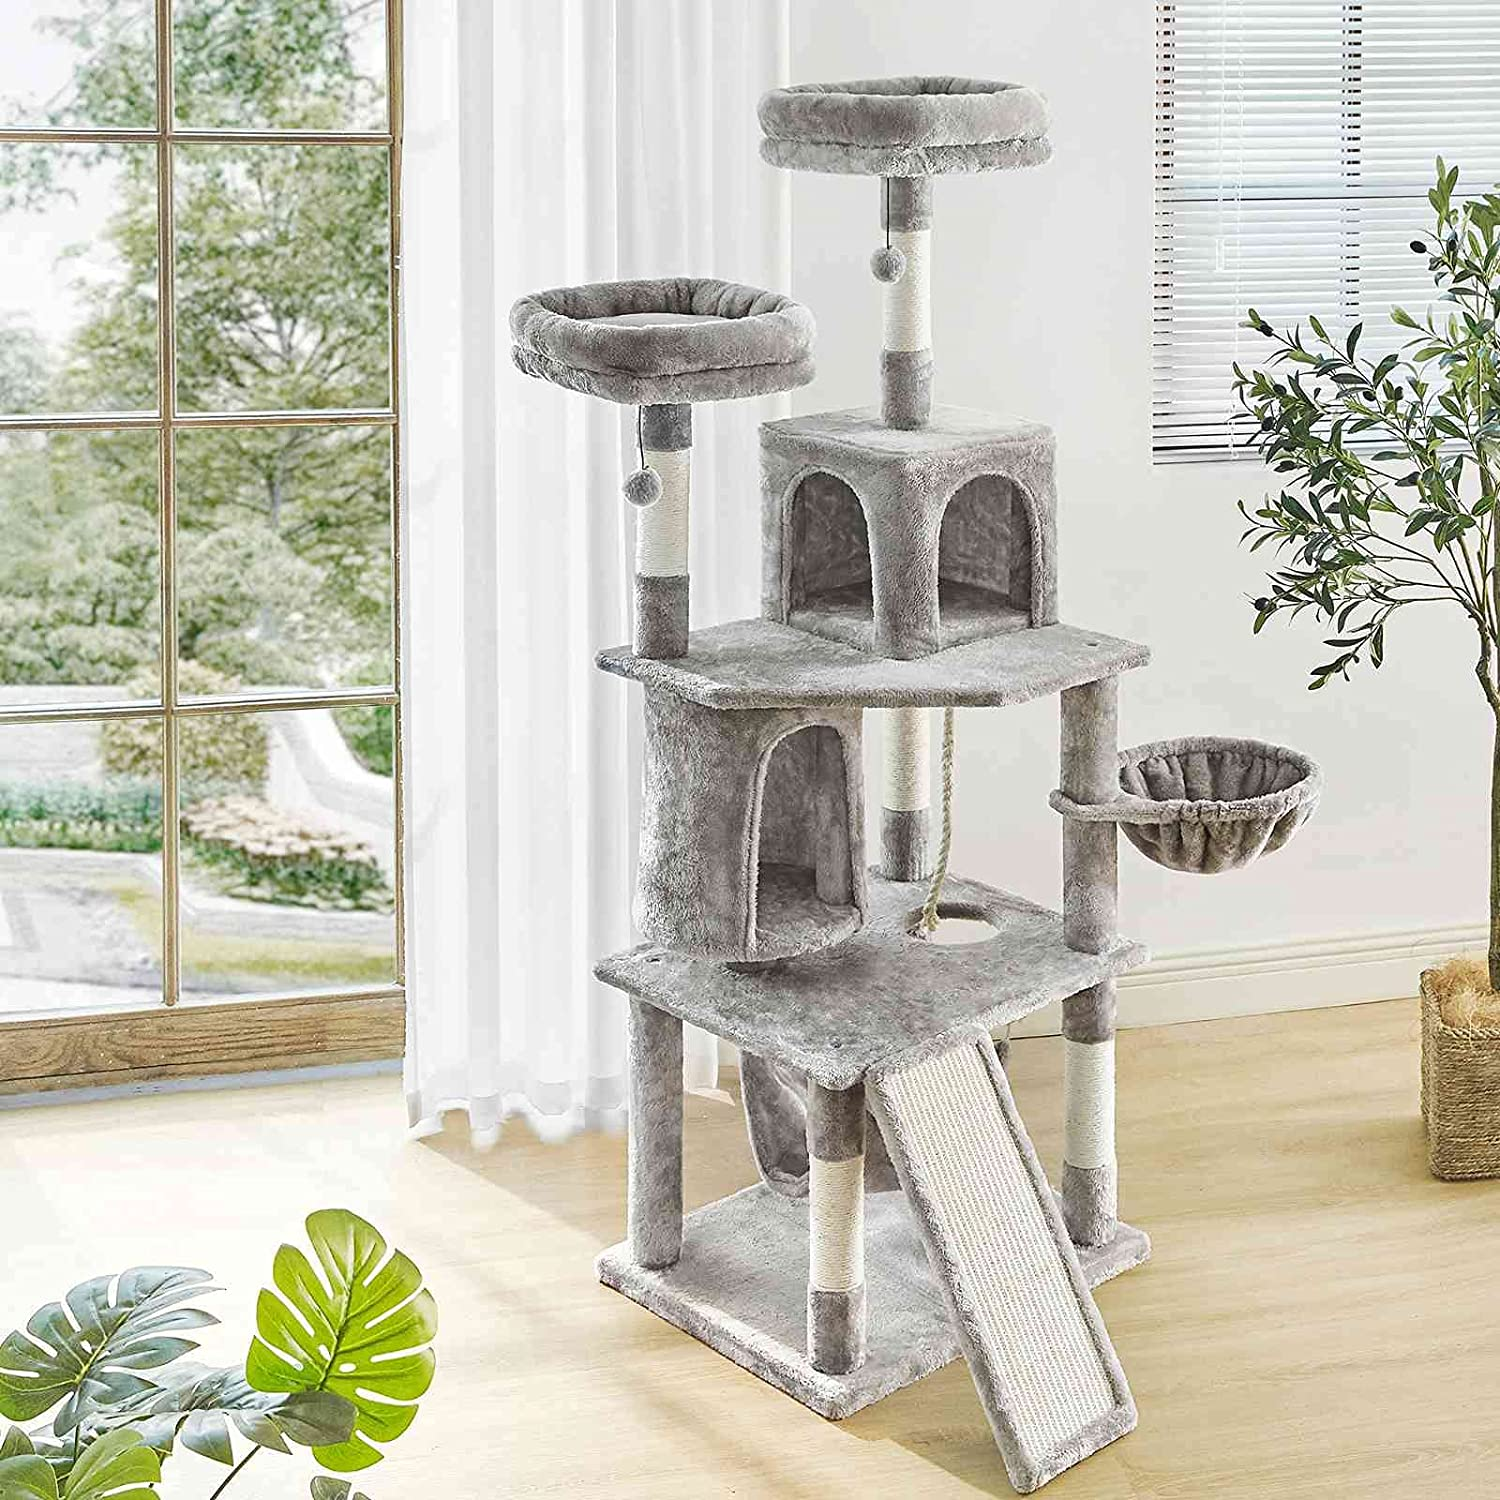 FRITHJILL 6 Levels 64.6 Inches Tall Tree Scratchi Cat with Directly managed Bargain store Large